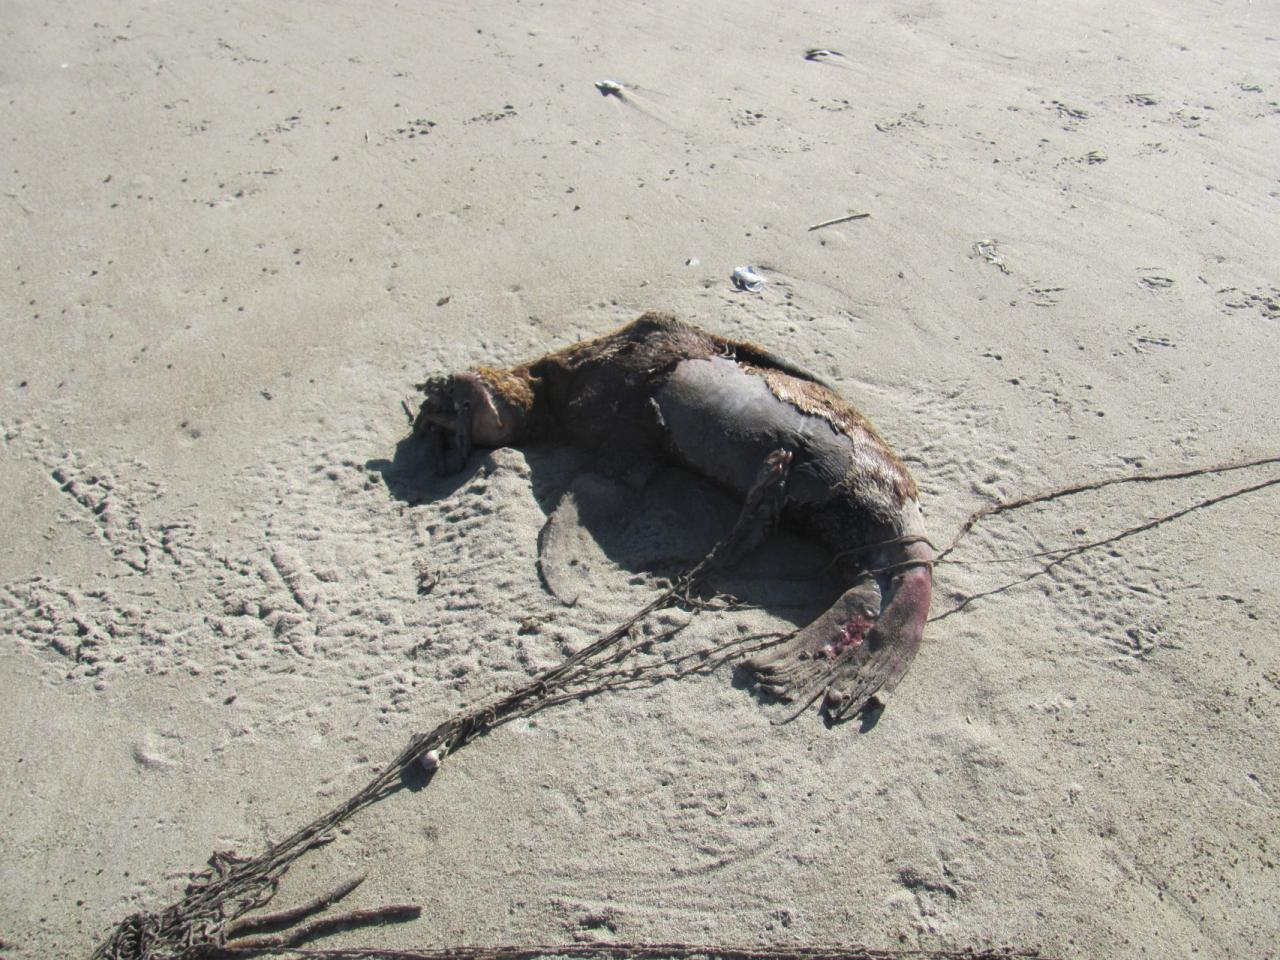 What looked to me like a dead little seal, possibly entangled.